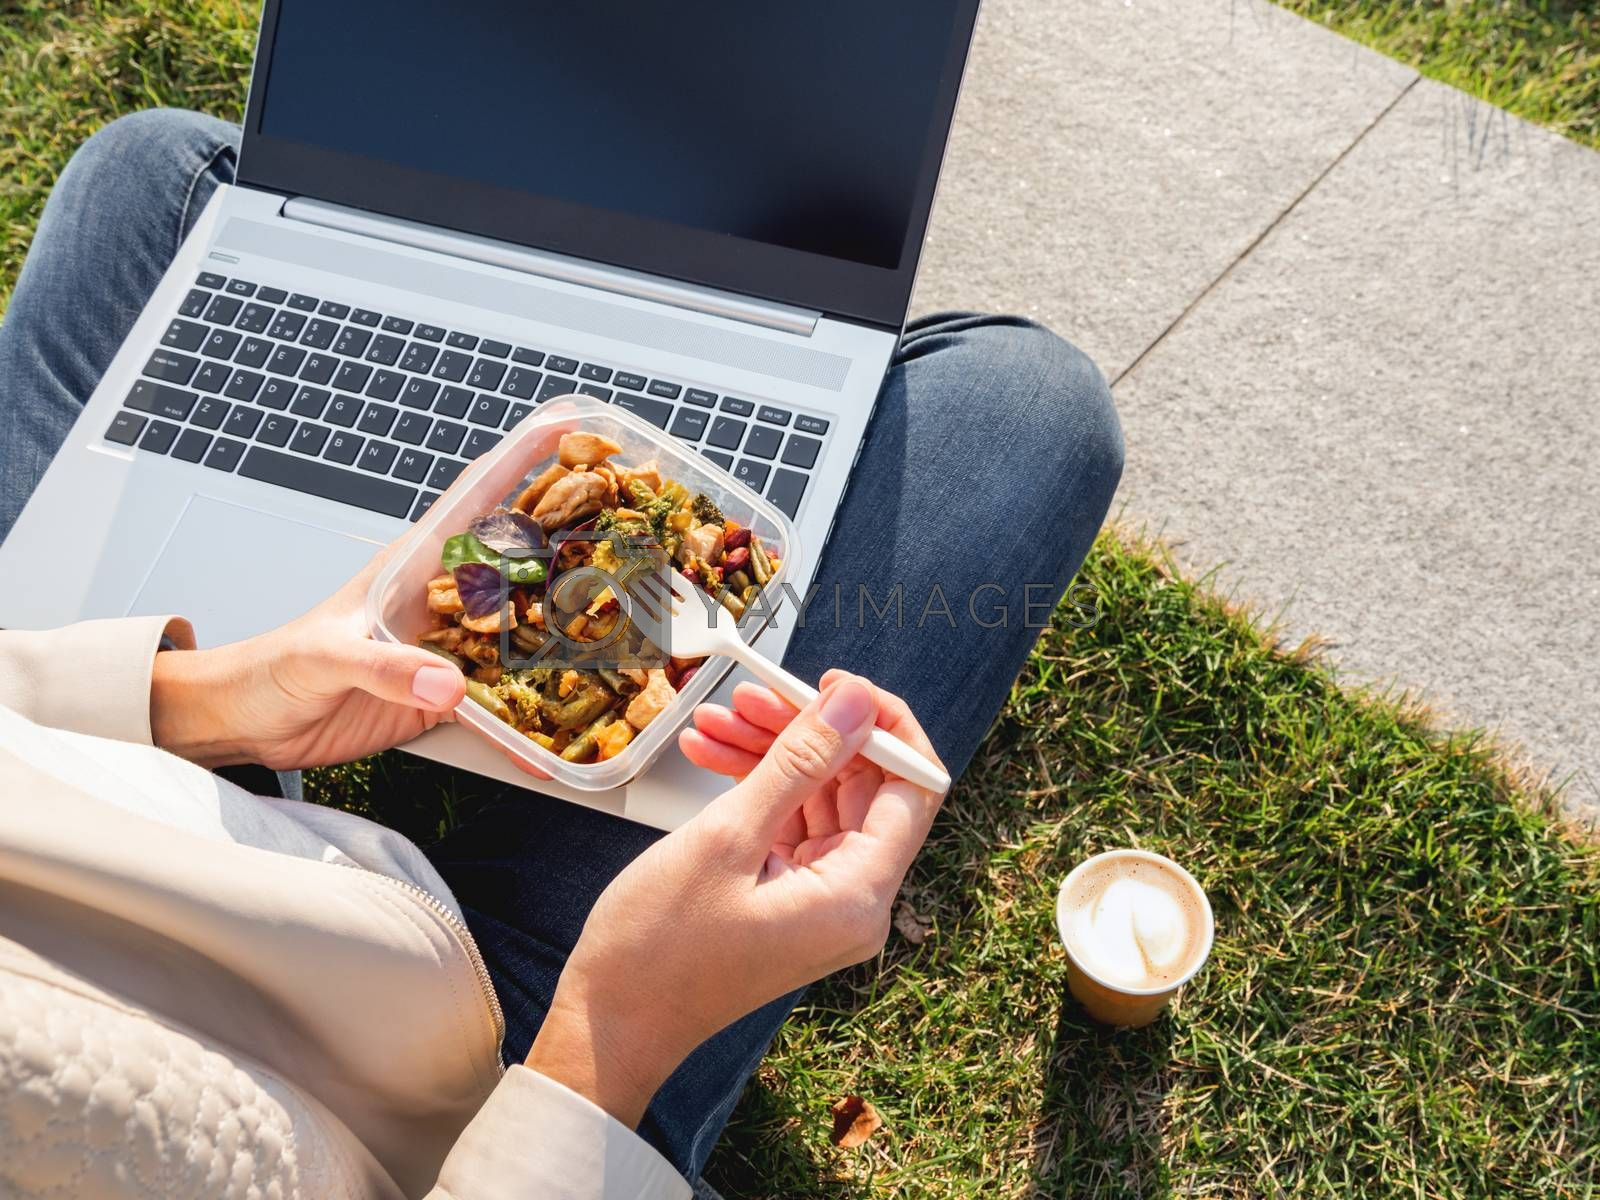 Woman sits on park bench with laptop and take away lunch box, cardboard cup of coffee. Healthy bowl with vegetables. Casual clothes, urban lifestyle of millennials. Healthy nutrition.